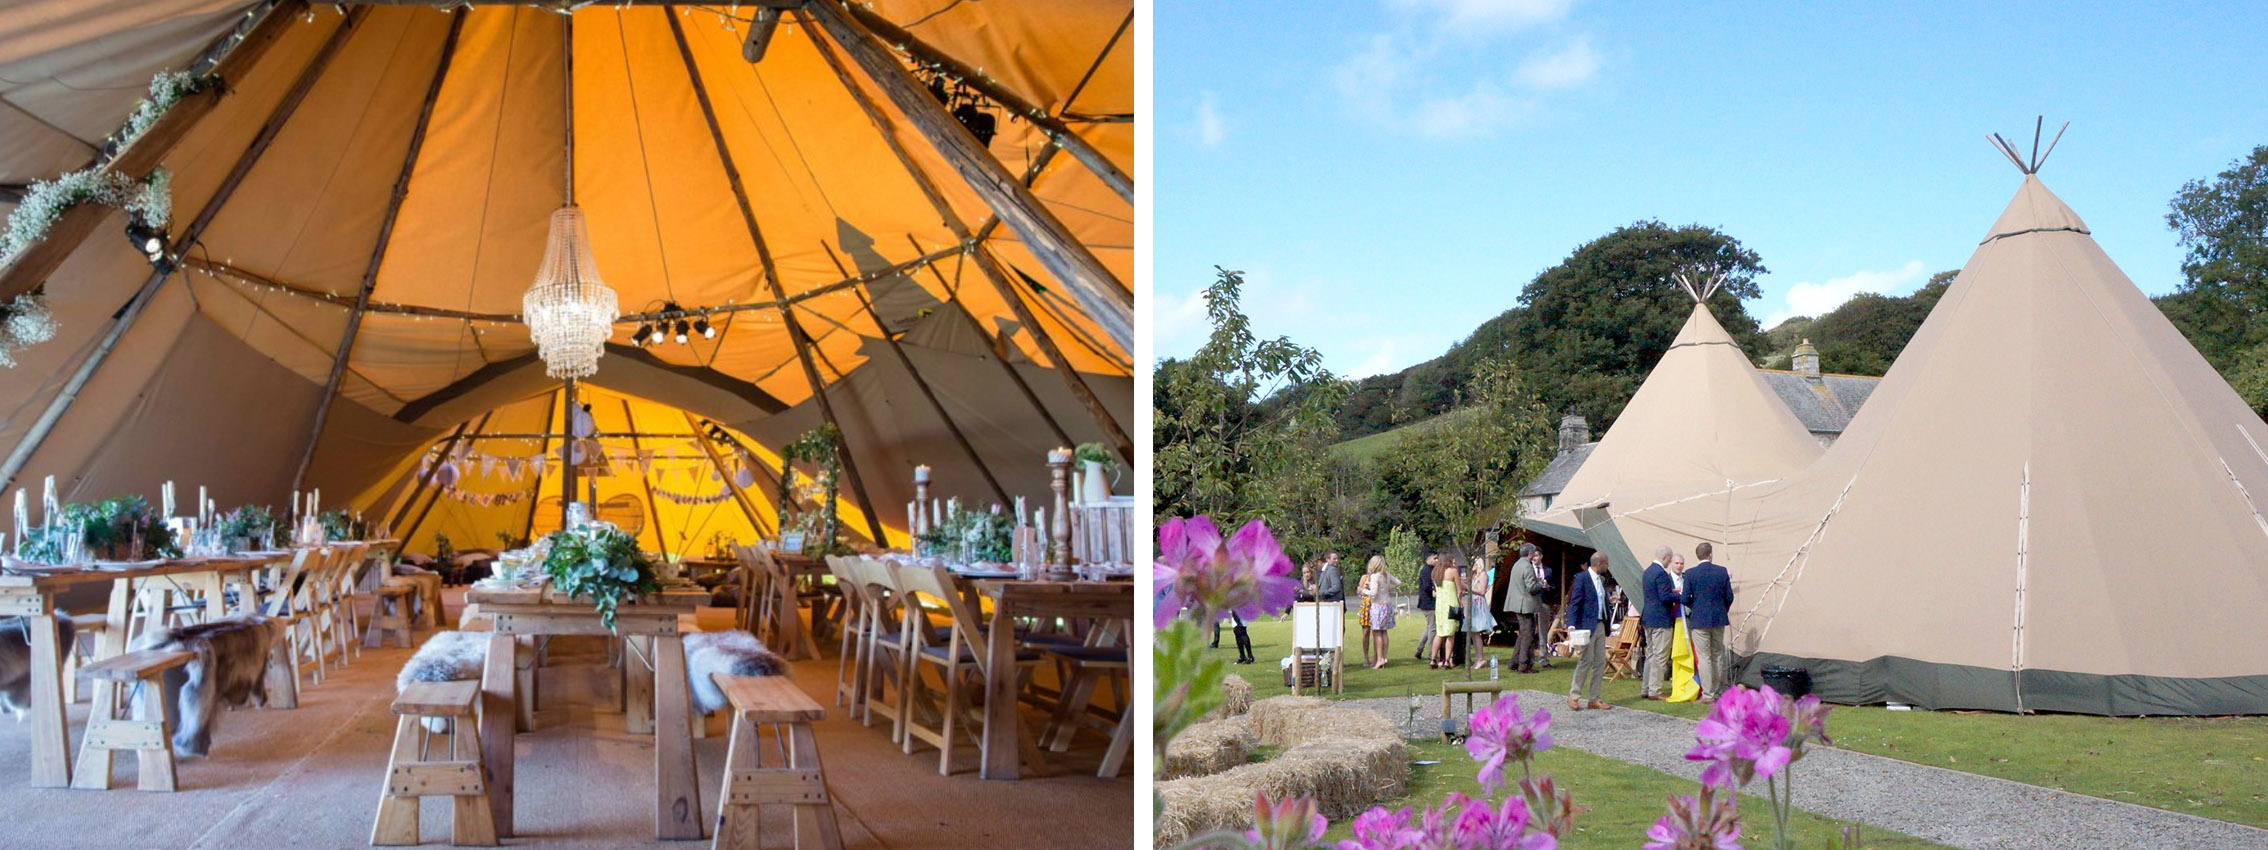 A World Inspired tent tipi on the lawn at Pengenna Manor.jpg